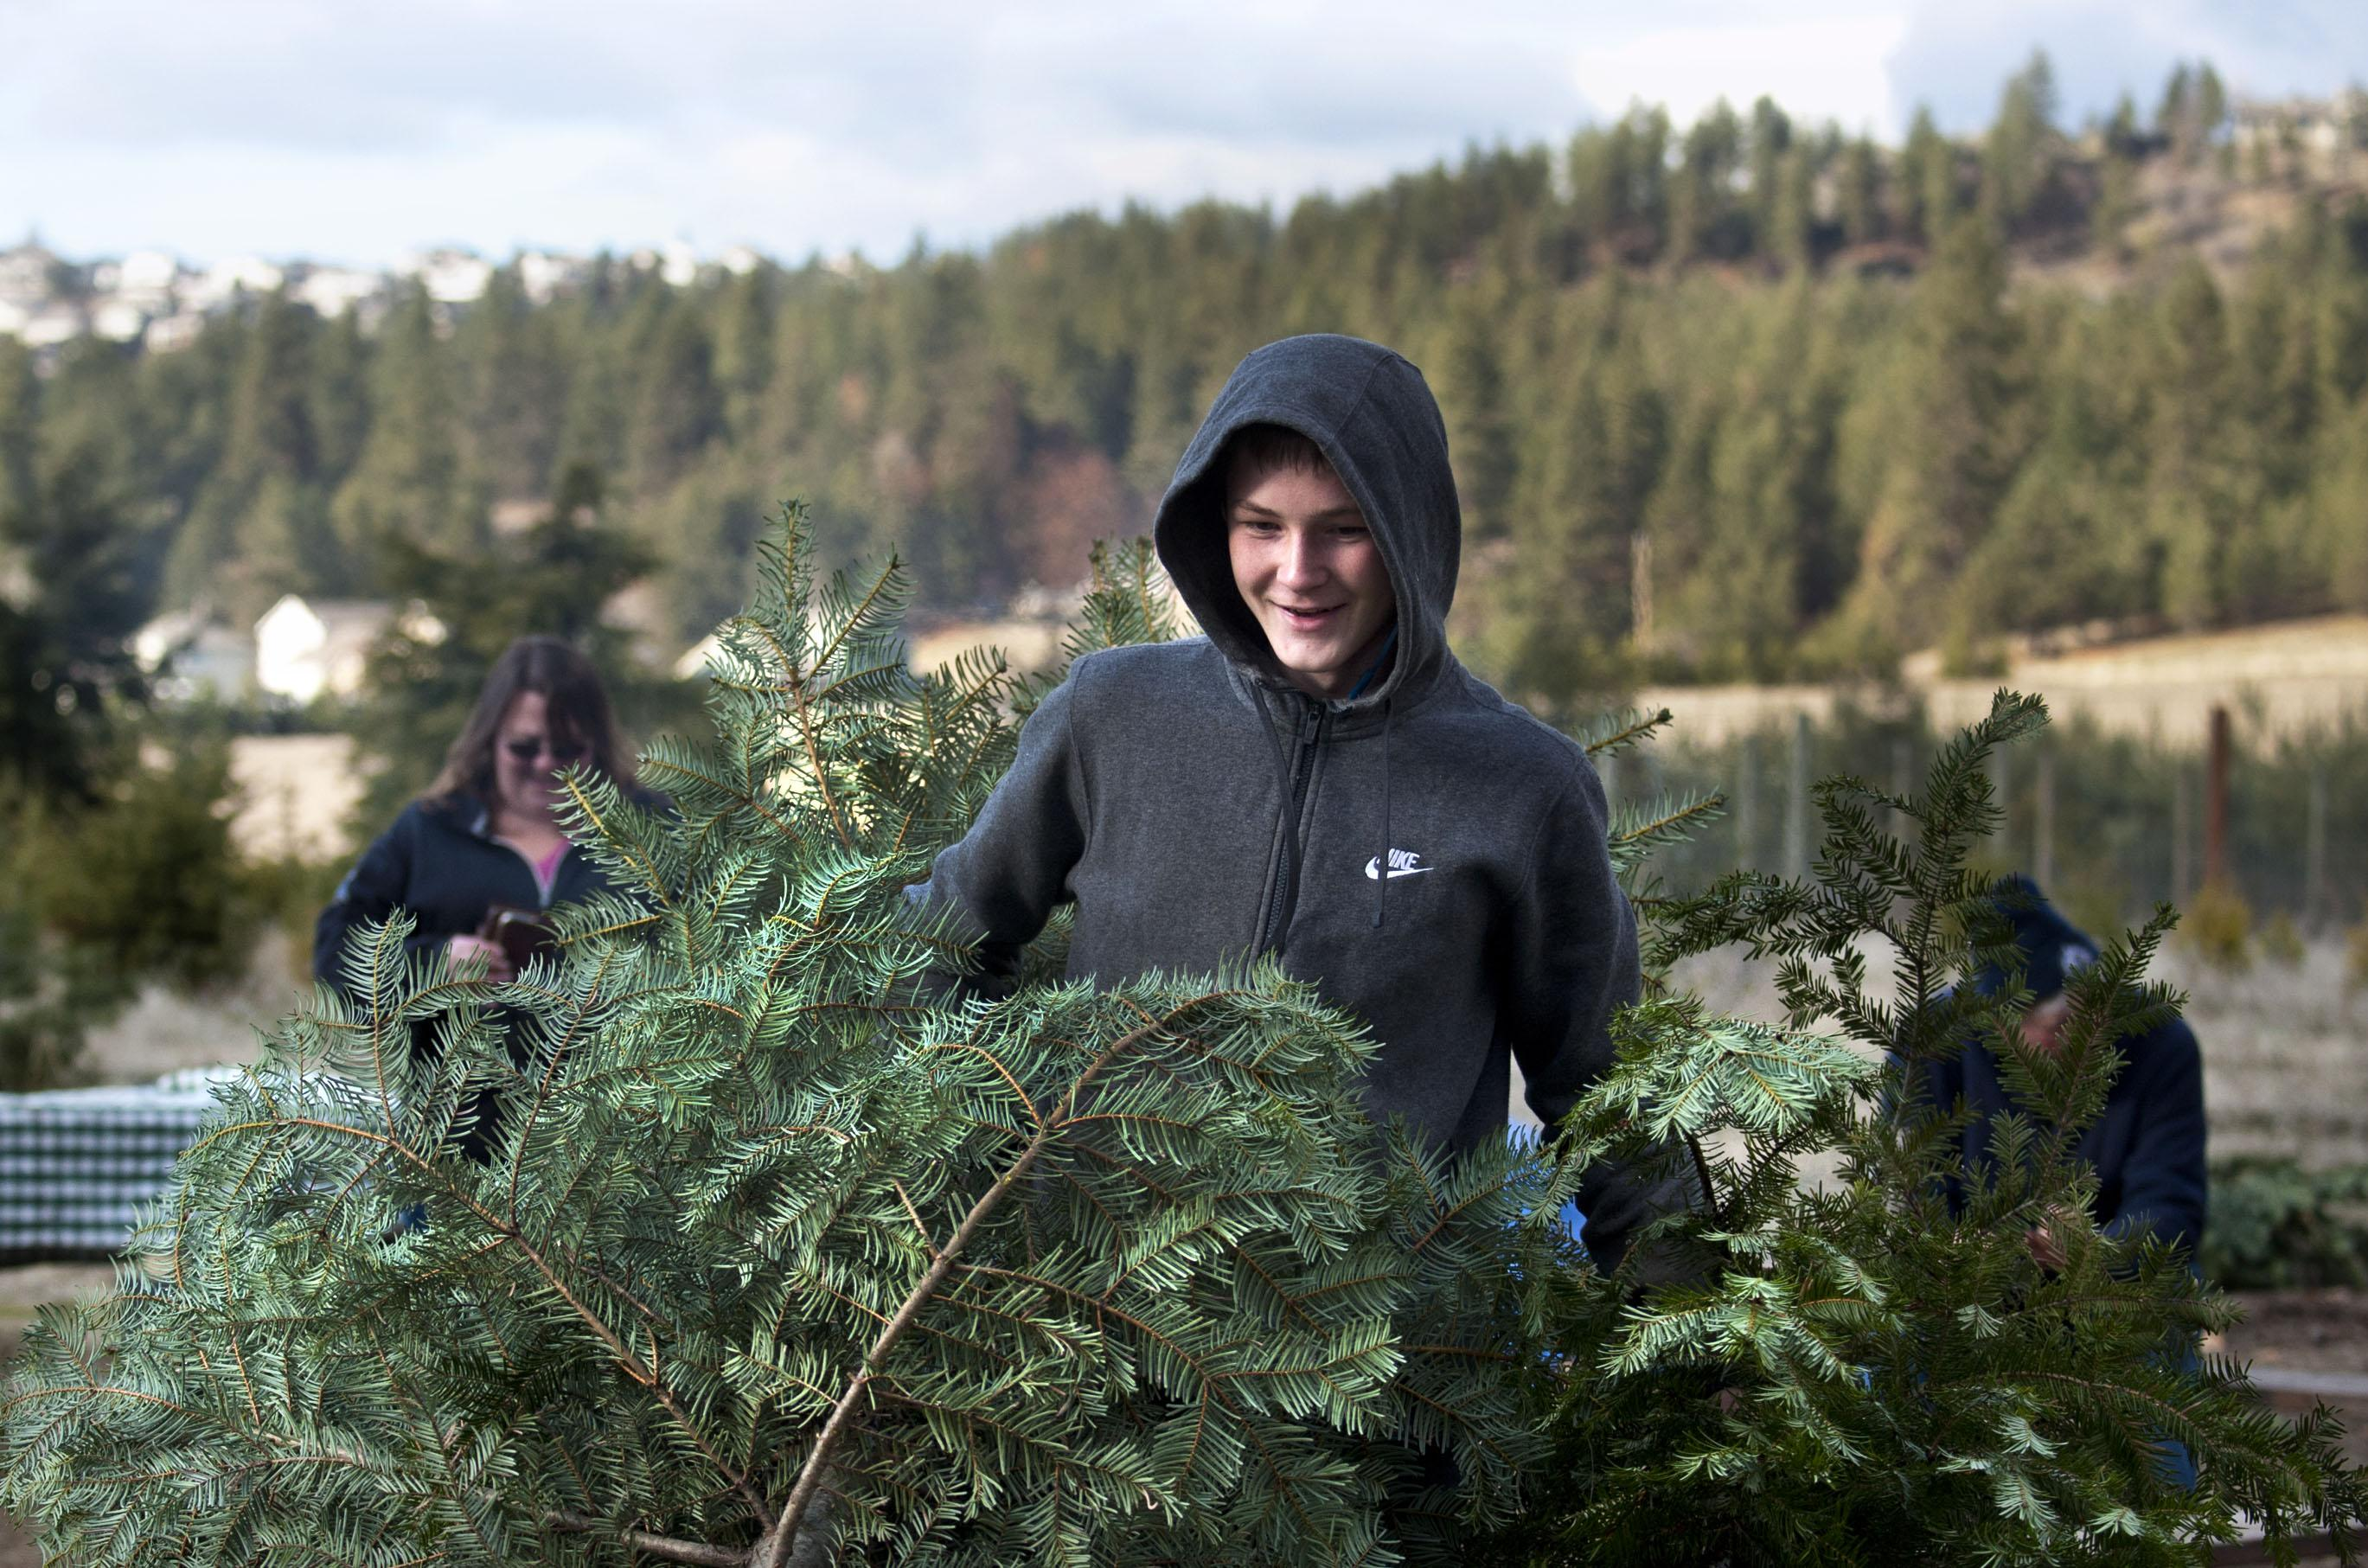 Hutton Settlement Christmas Trees 2020 Rob Curley: Among the Christmas trees, Hutton Settlement's Trevor